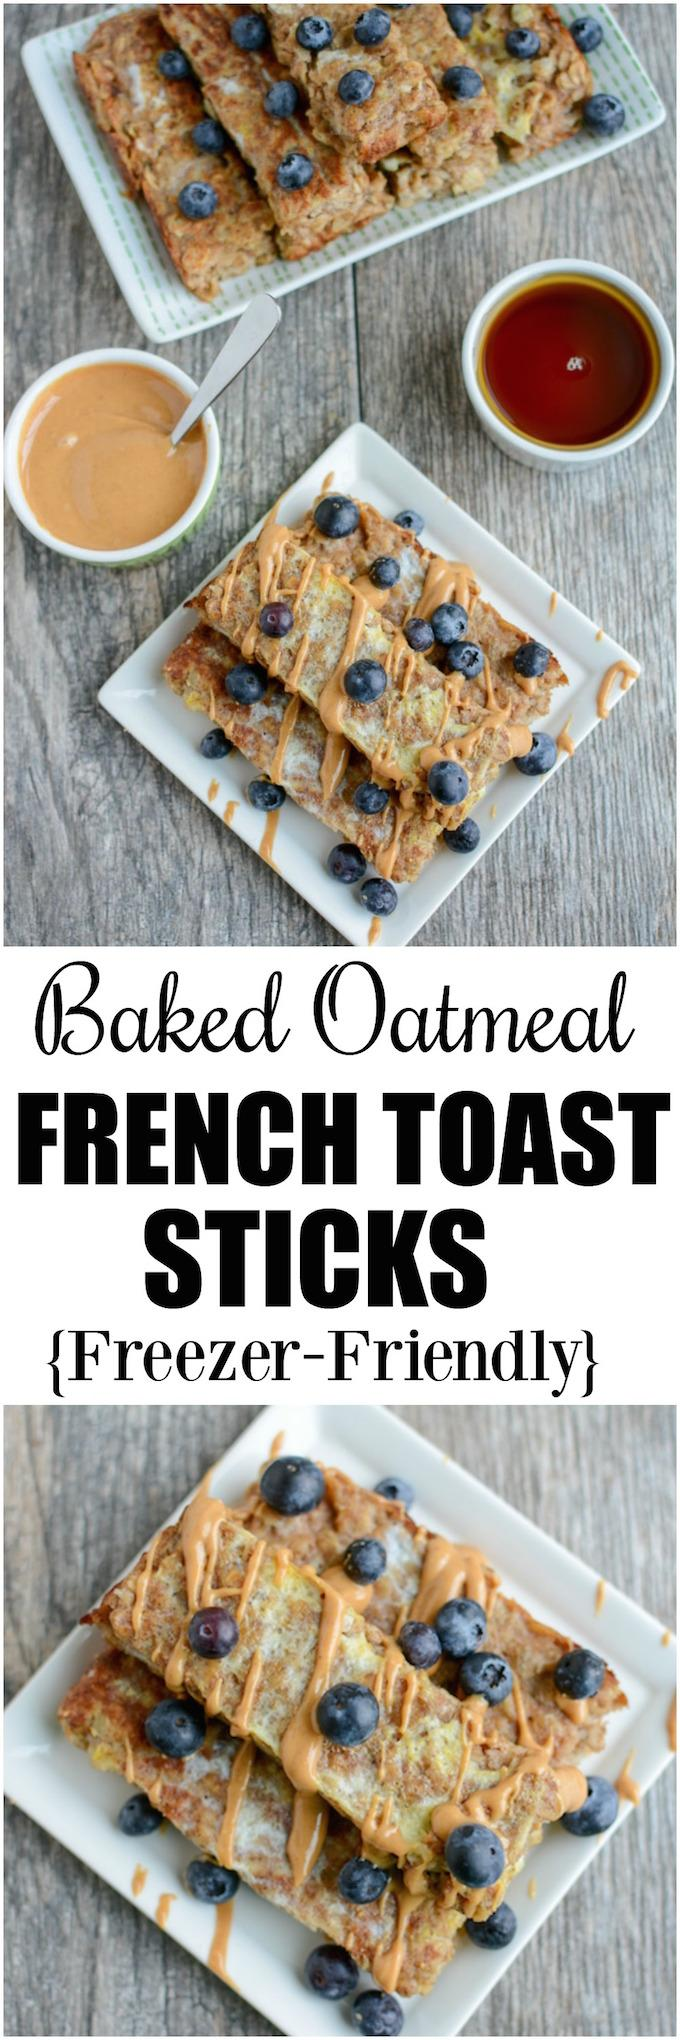 These Banana Baked Oatmeal French Toast Sticks are a healthy, gluten-free, kid-friendly breakfast recipe. They can even be made ahead of time, stored in the freezer and reheated in the microwave!